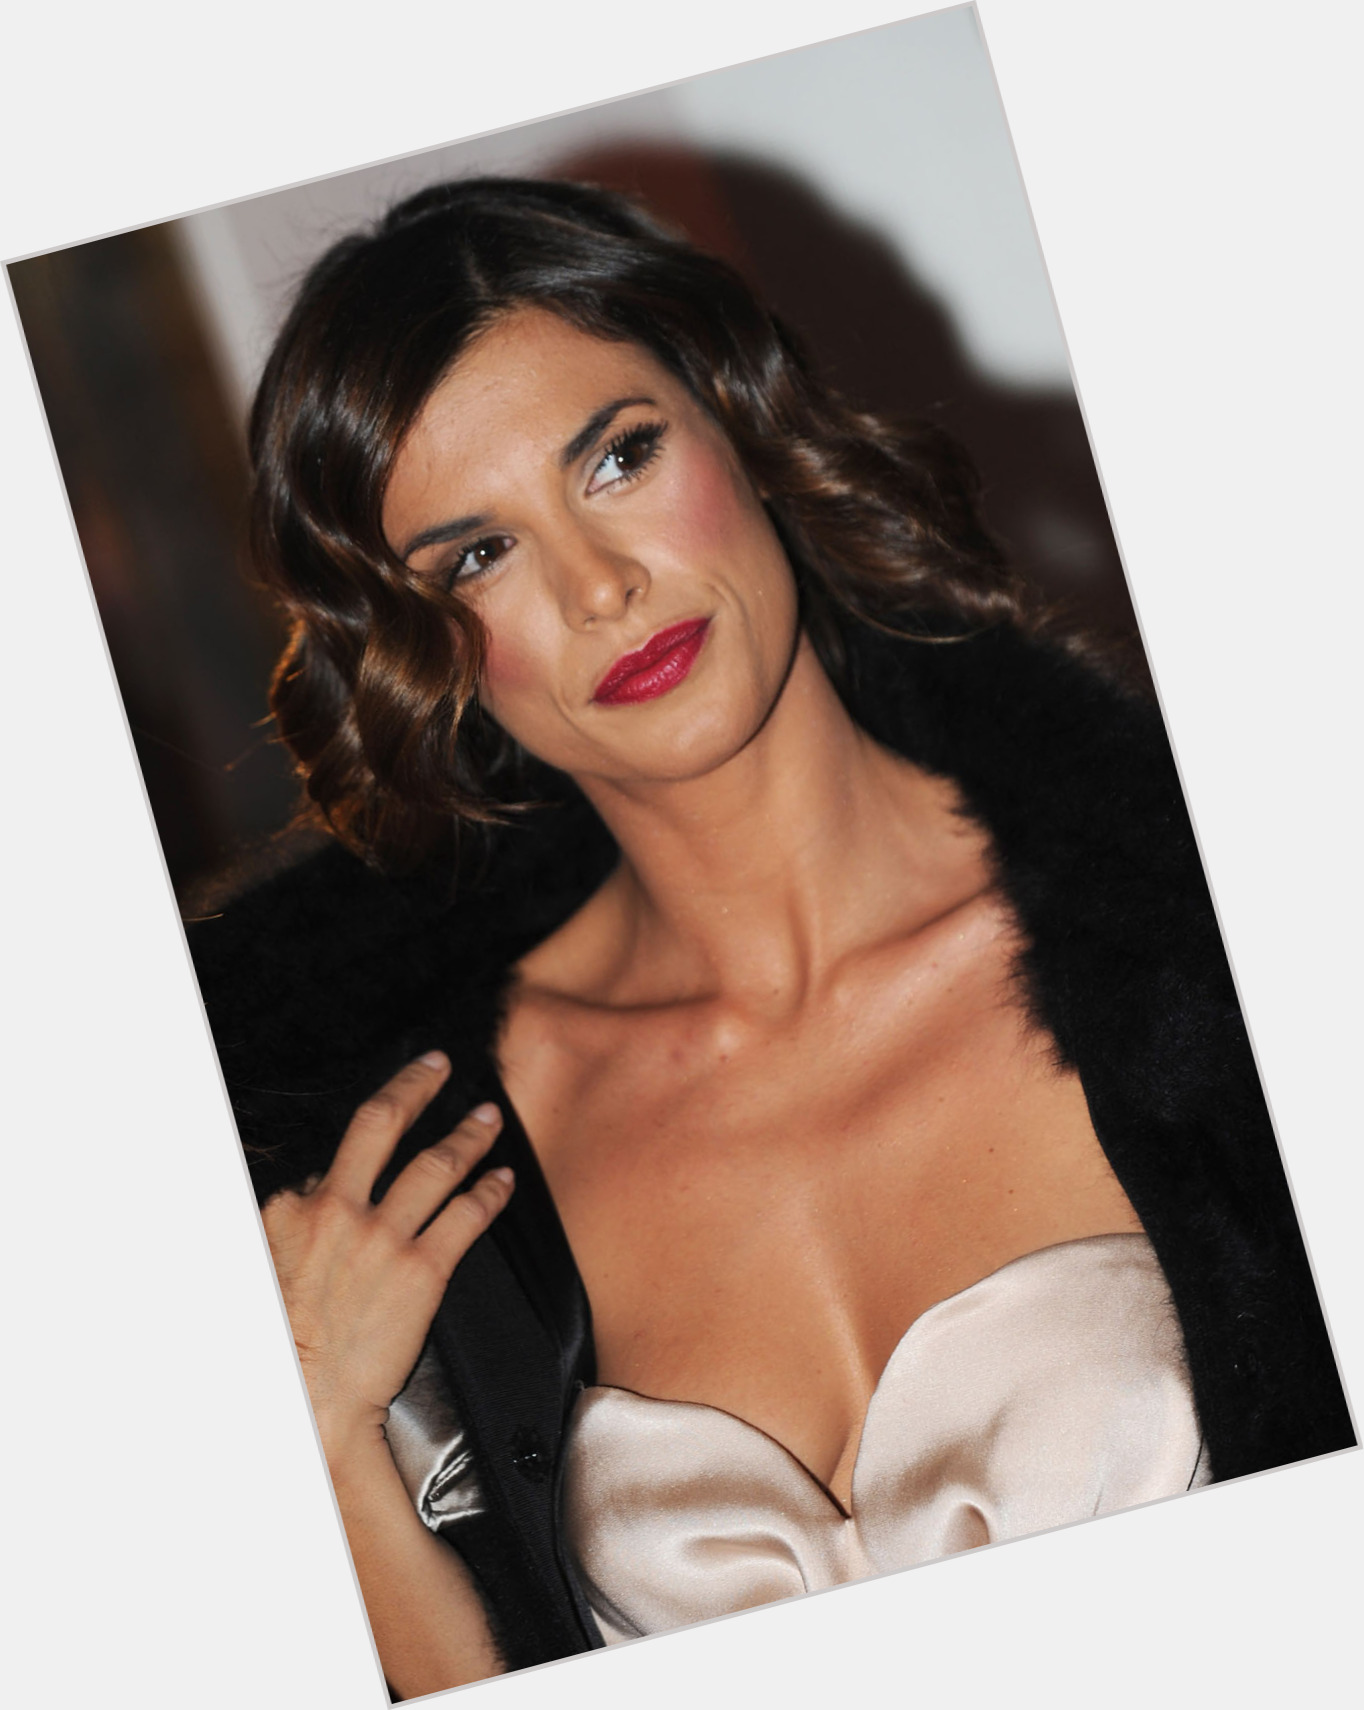 Elisabetta Canalis dating 1